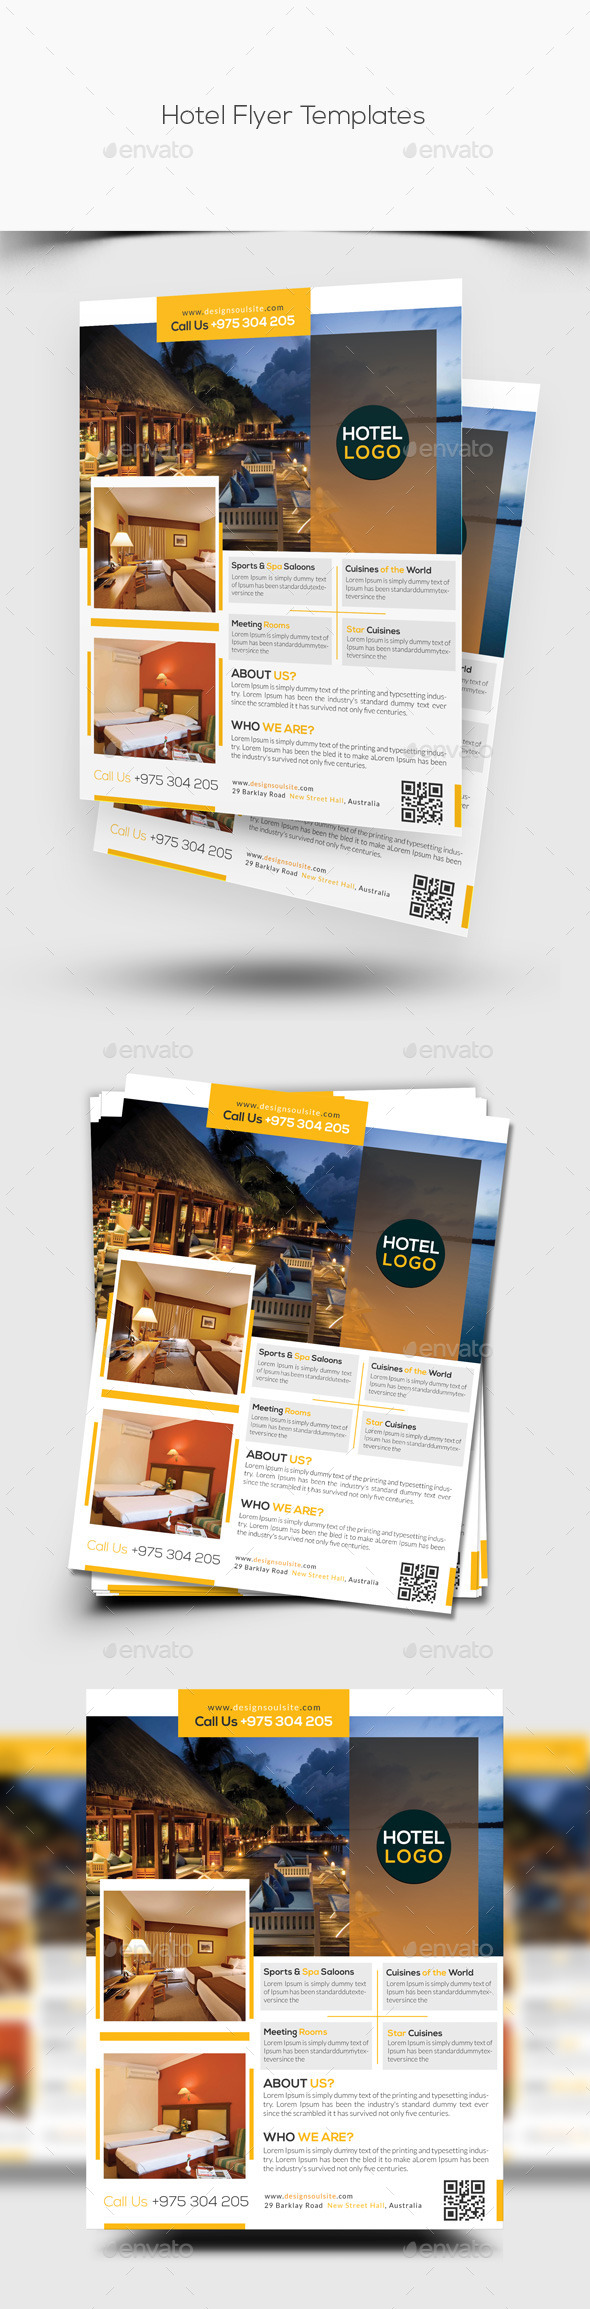 Hotel Flyer Template - Corporate Flyers